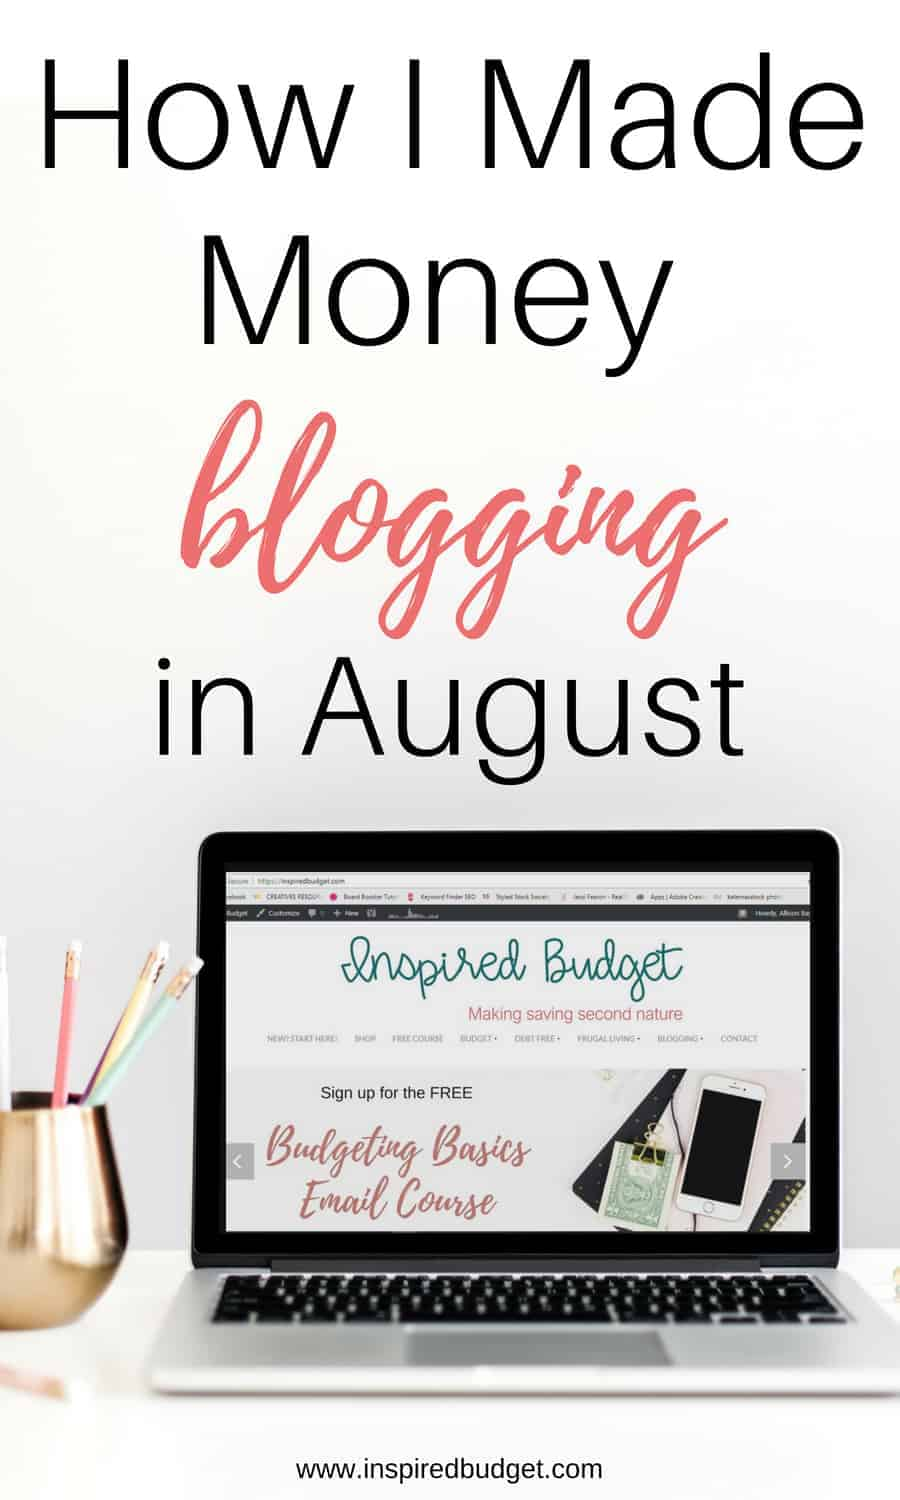 August blogging income report image 1